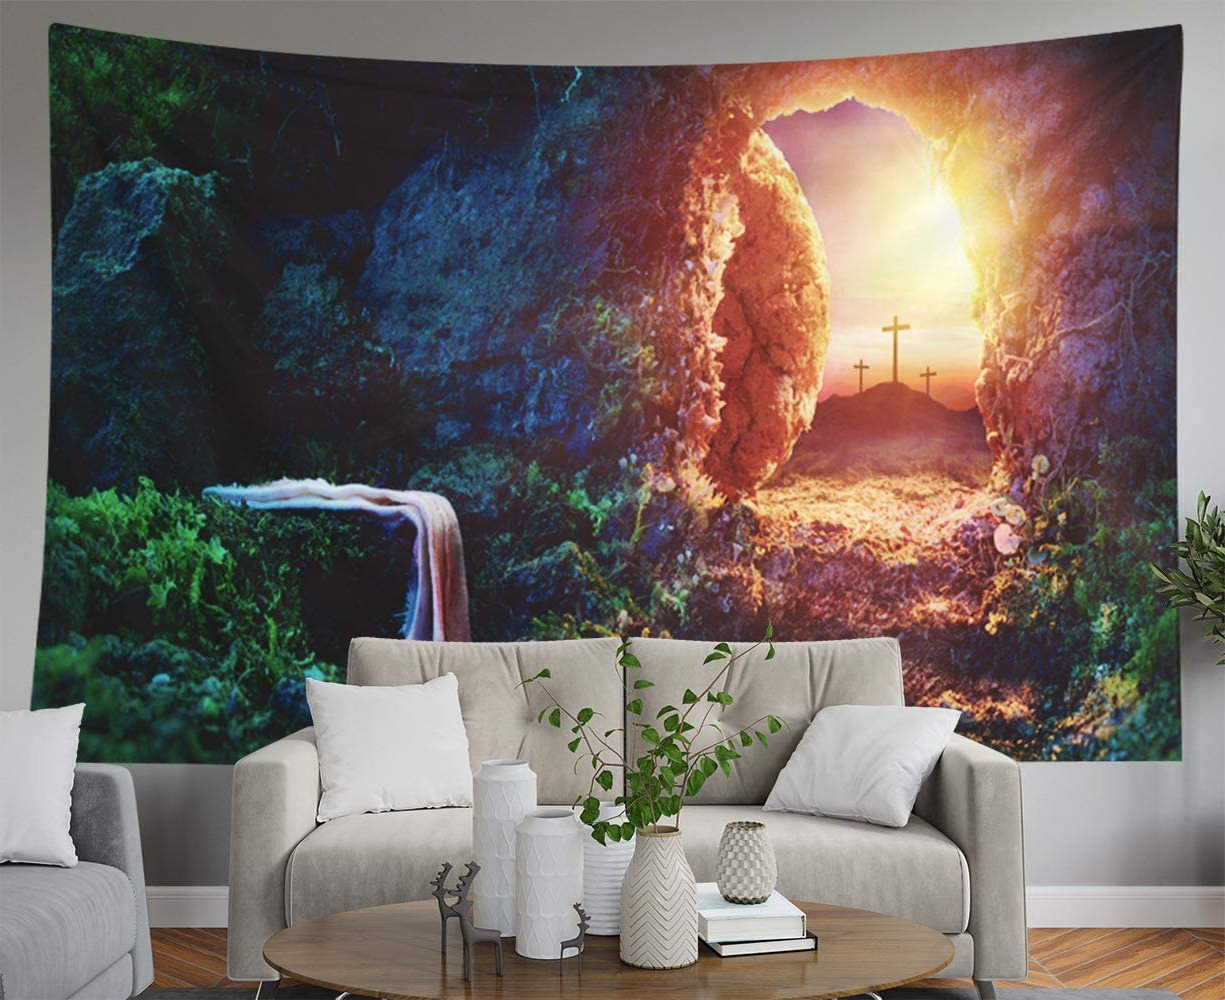 Blended Fabric Blessings Of Christmas Tapestries With Regard To Most Recently Released Asdecmoly Tapestry,wall Tapestry Wall Tapestry For Bedroom 60 Lx50 W Inches Crucifixion Empty Jesus Tomb Shroud Resurrection Tapestry Wall Hanging (View 17 of 20)